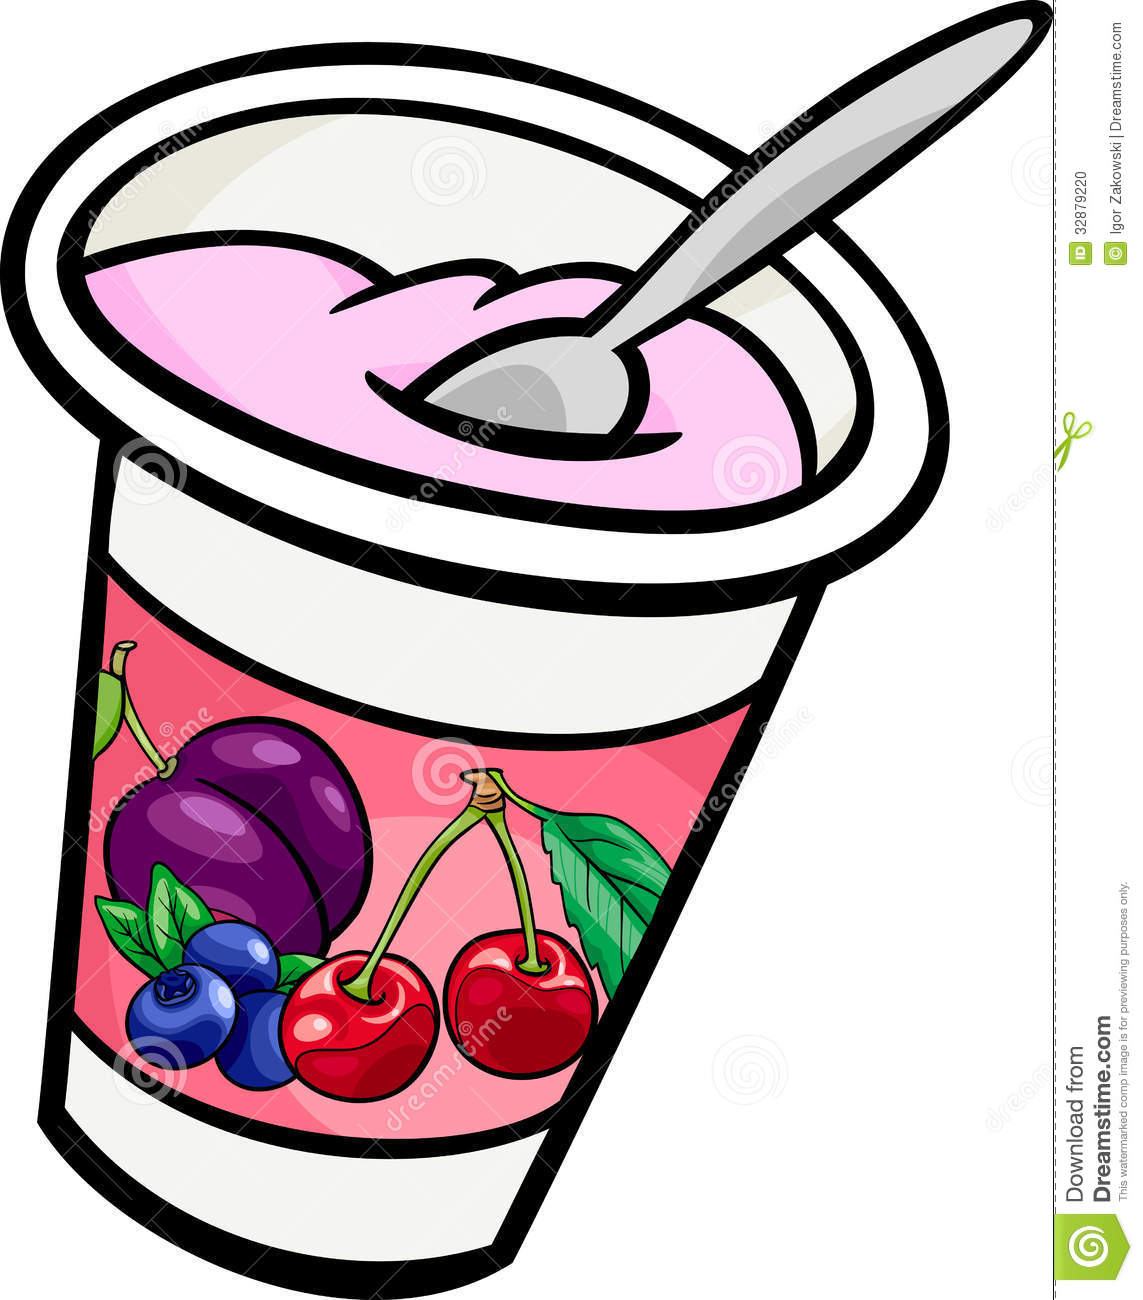 Yogurt clipart Yogurt%20clipart%20black%20and%20white Yogurt Clipart Clipart Panda